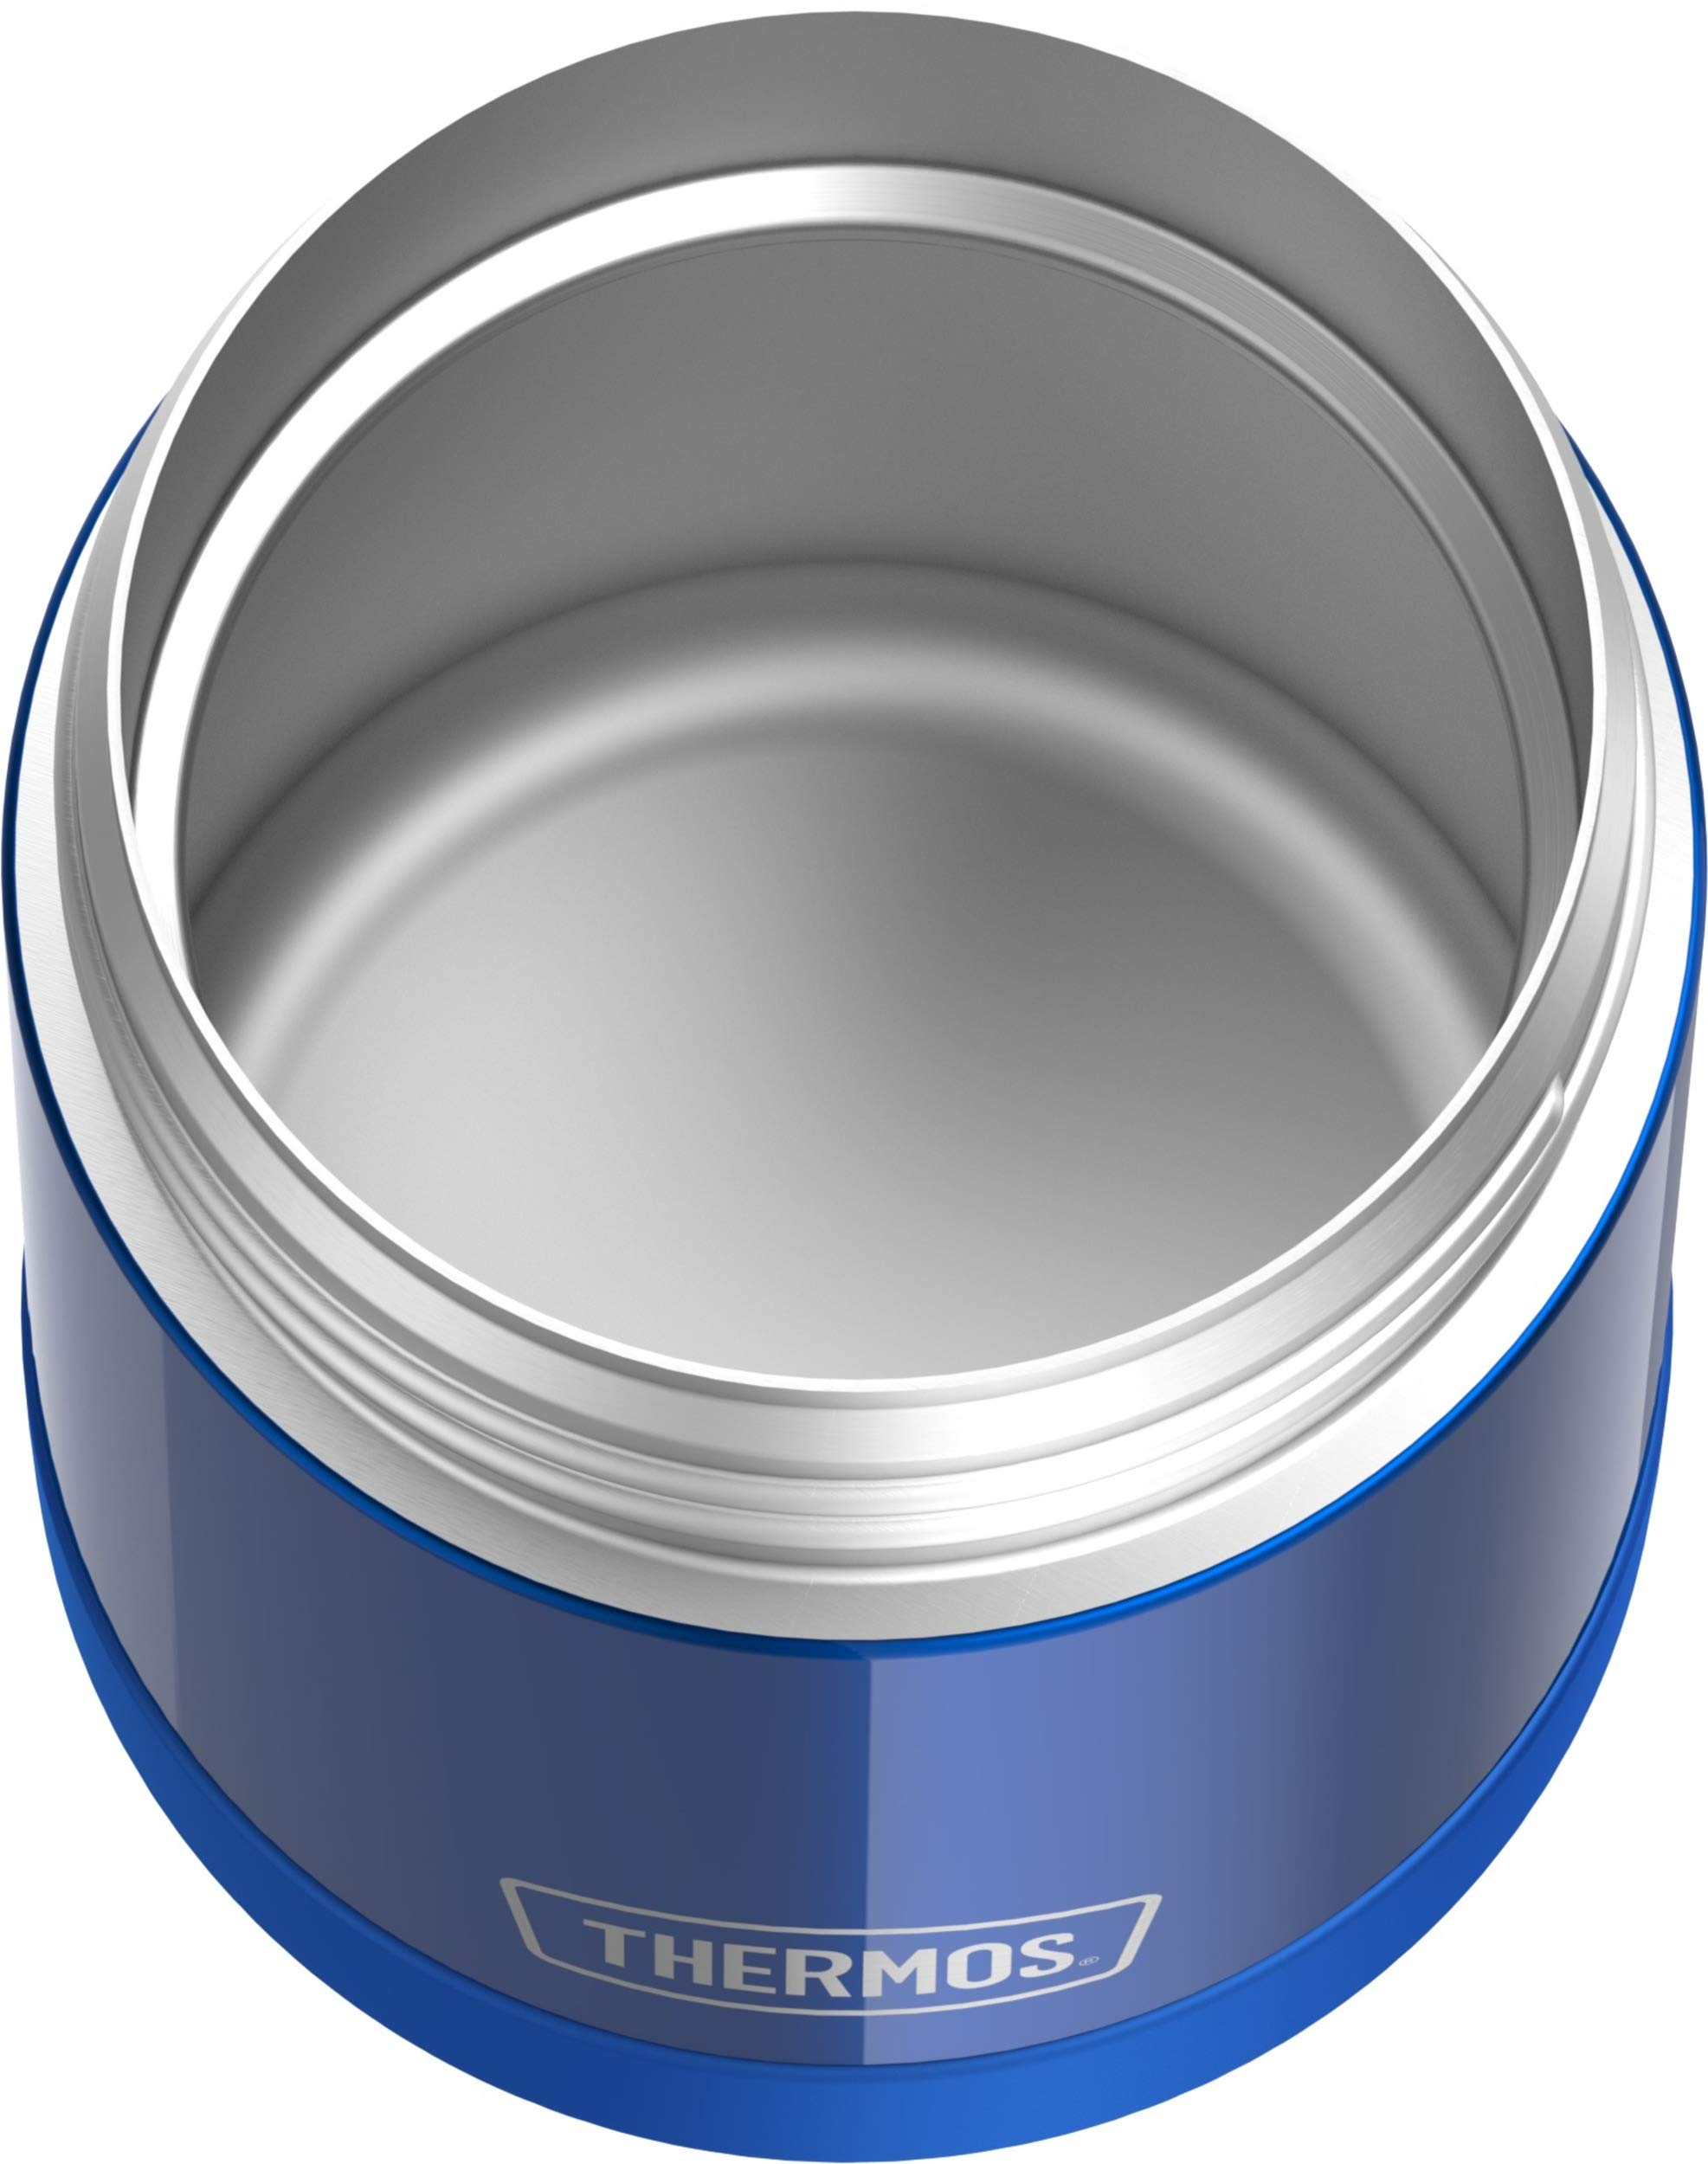 THERMOS FUNTAINER 10 Ounce Stainless Steel Vacuum Insulated Kids Food Jar, Blue